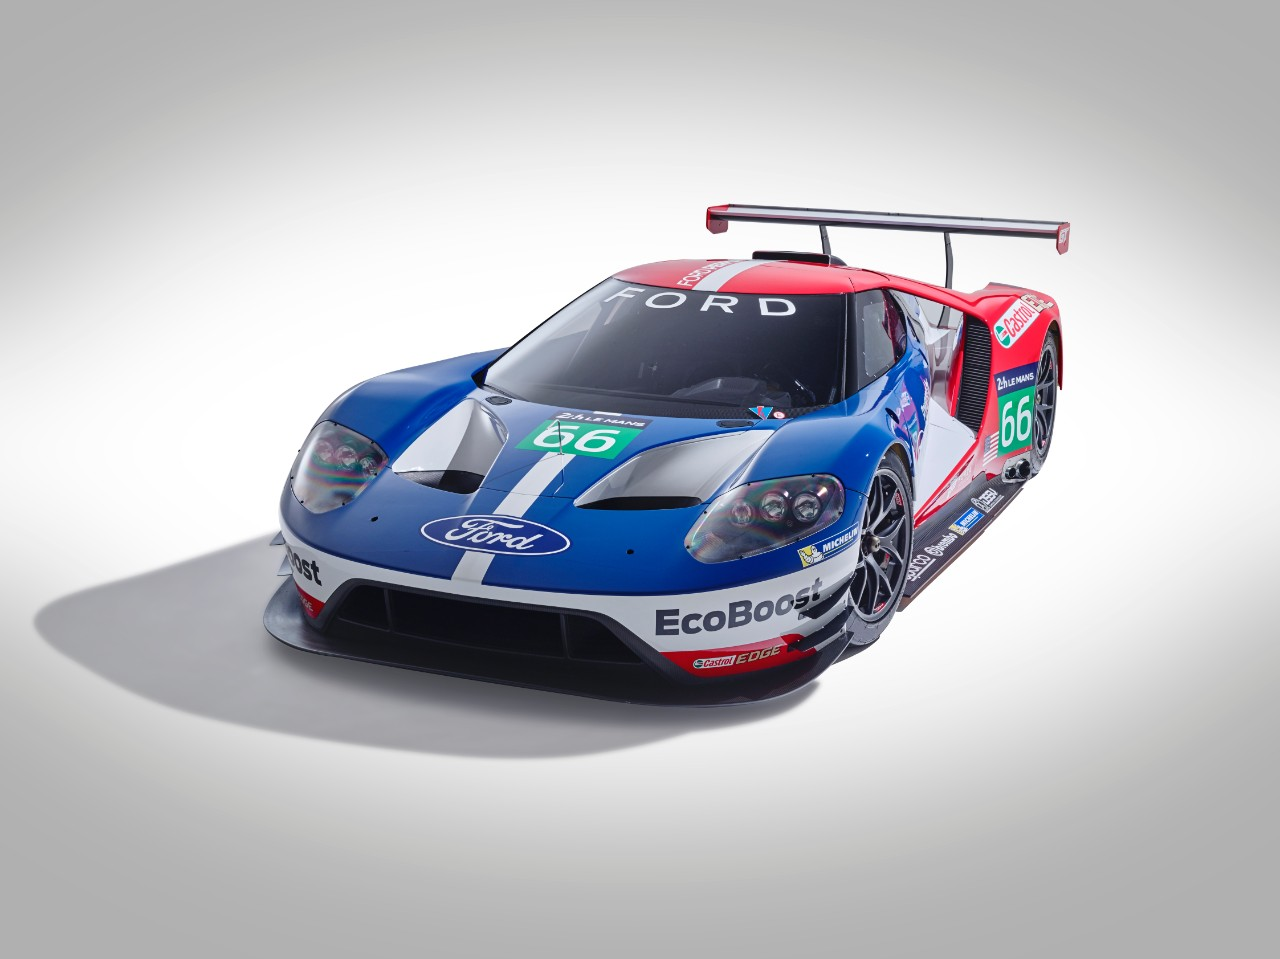 ford returning to le mans in 2016 with all new ford gt build race party. Black Bedroom Furniture Sets. Home Design Ideas